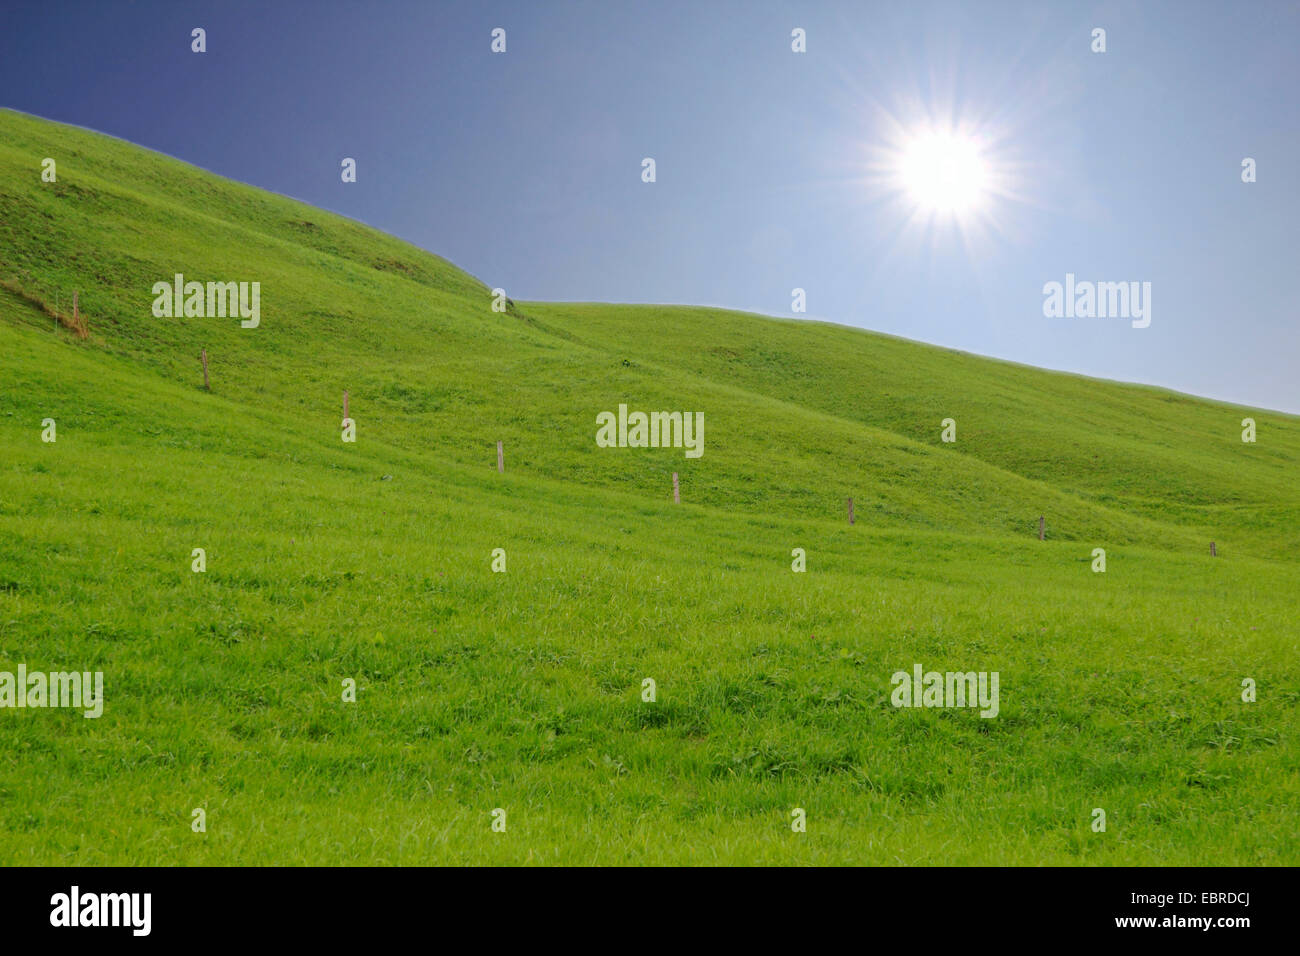 hilly landscape with meadows in backlight, Germany - Stock Image